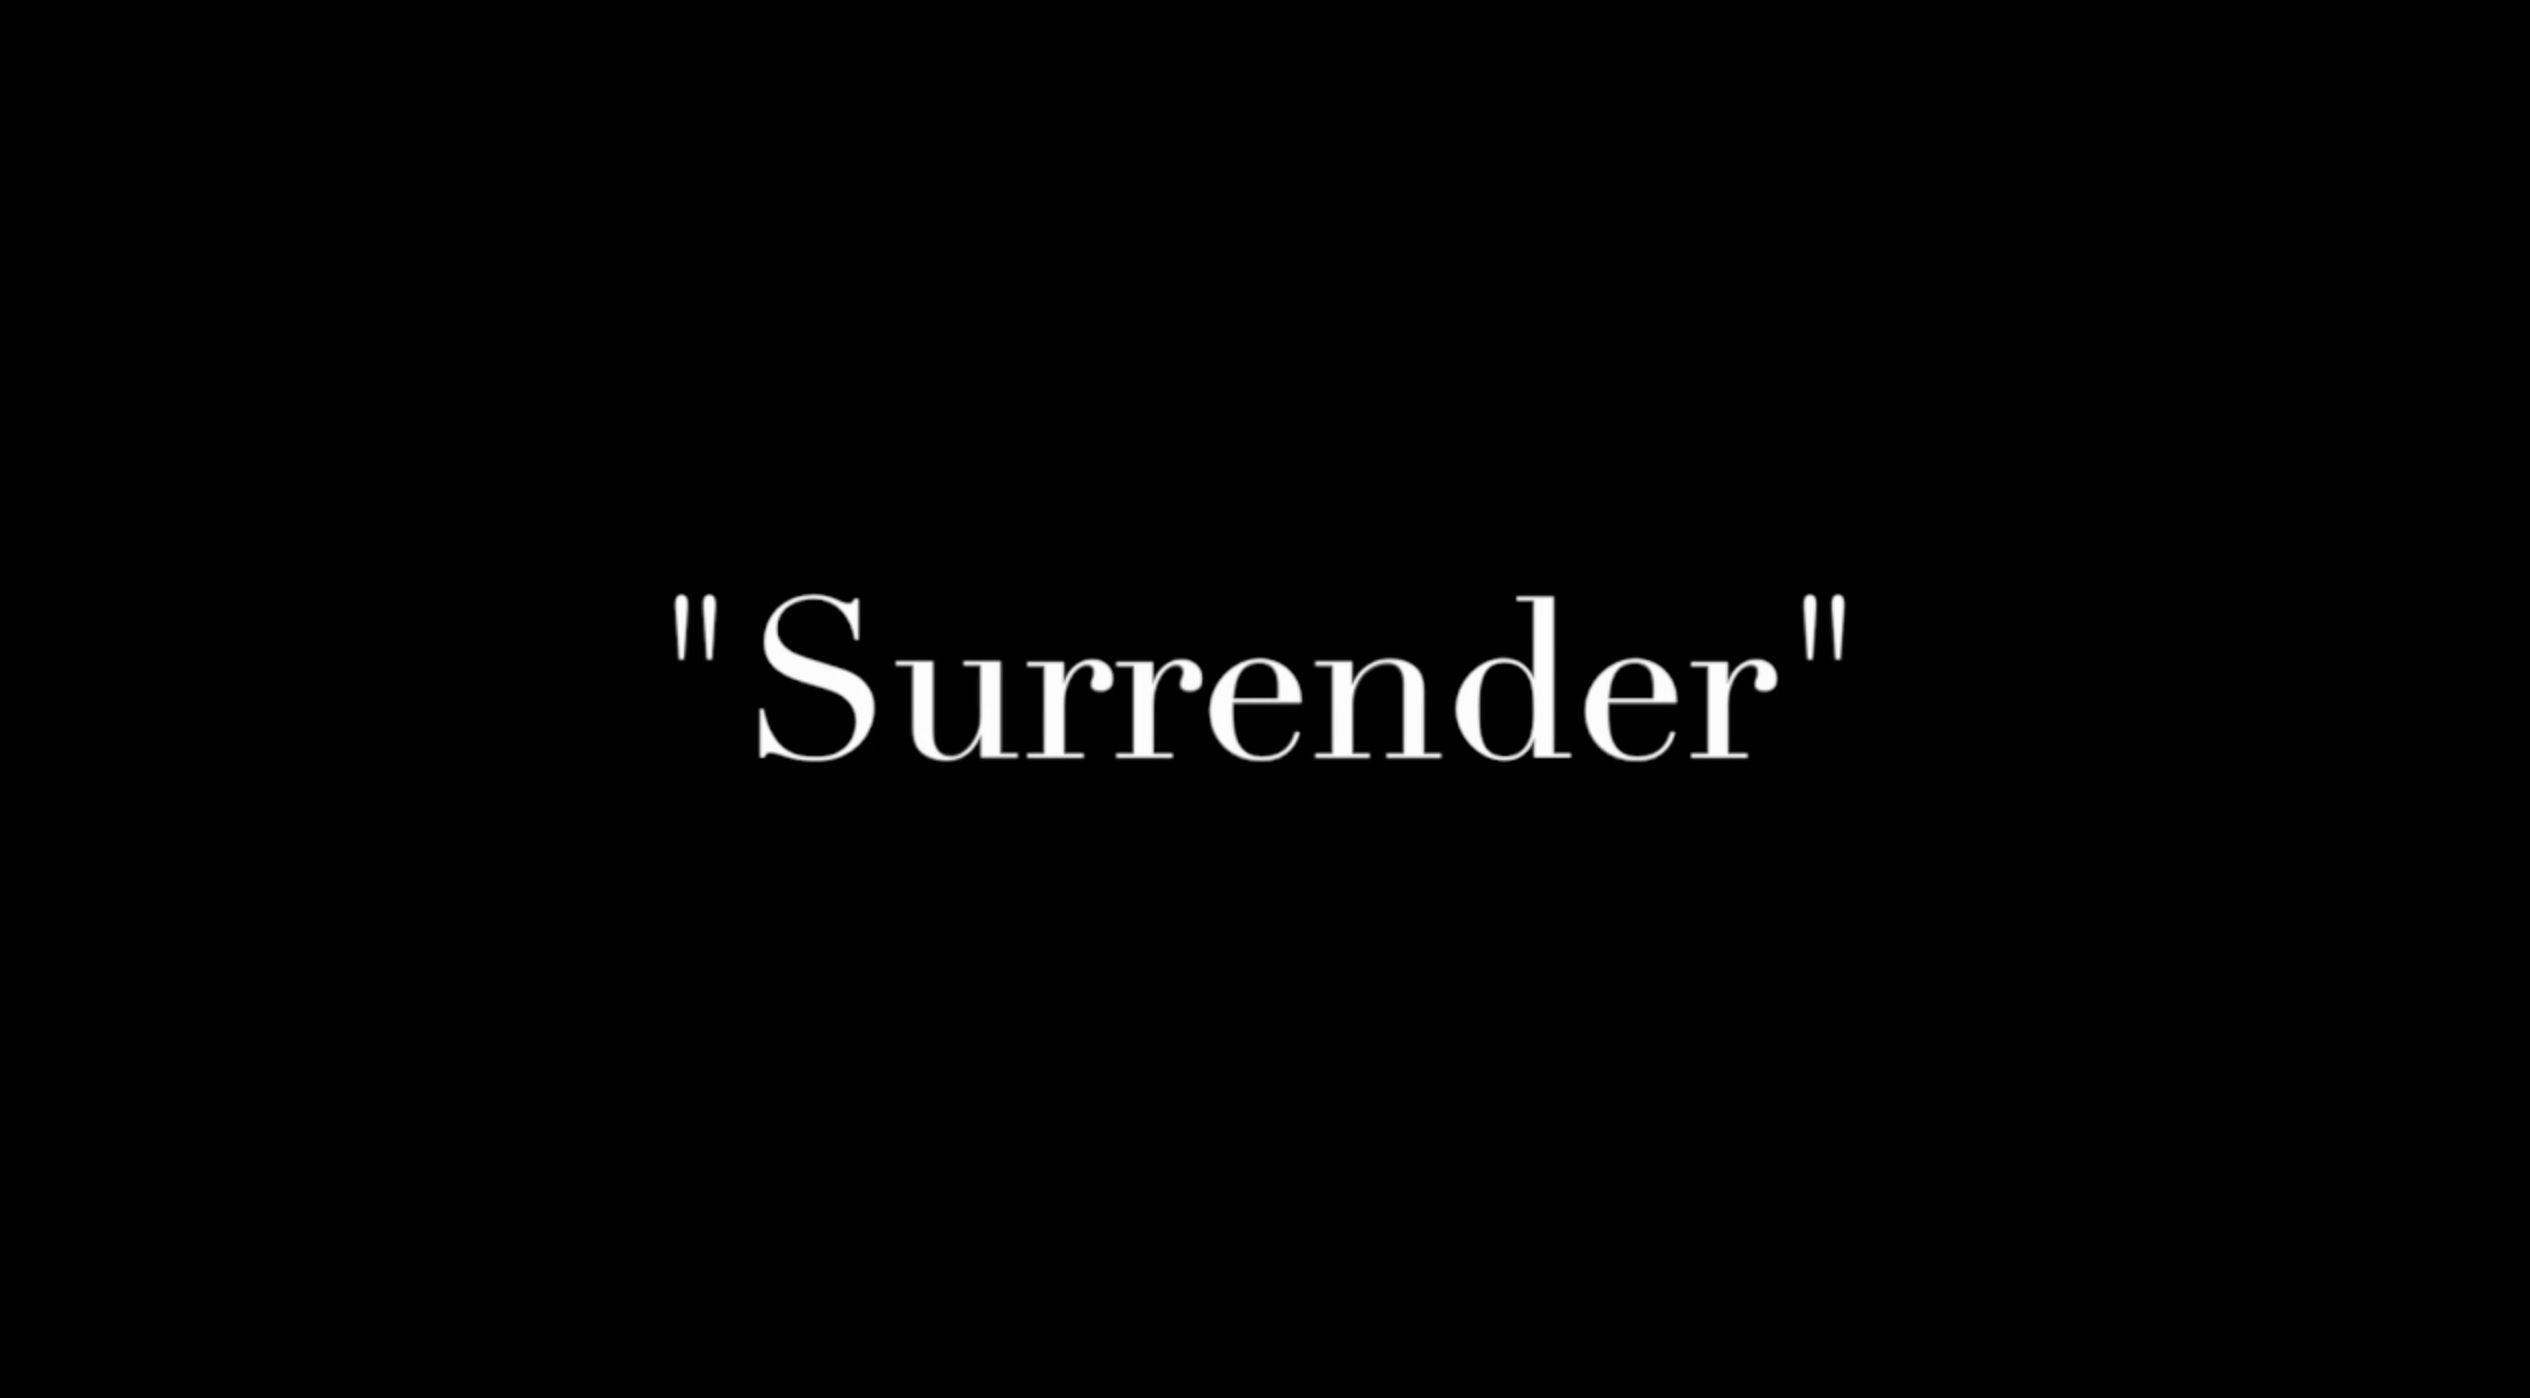 """Surrender to Your Muse! – I just came across this 30-sec video clip from a talk a gave a while back and it gave me a good giggle, especially as the number of times the word """"surrender"""" appears has jumped from 76 in the original edition of The Voice of the Muse: Answering the Call to Write (referenced in the clip) to 96(!) in the updated/expanded edition! • Visit www.youtube.com/markdavidgerson for more inspiration and resources for writers."""